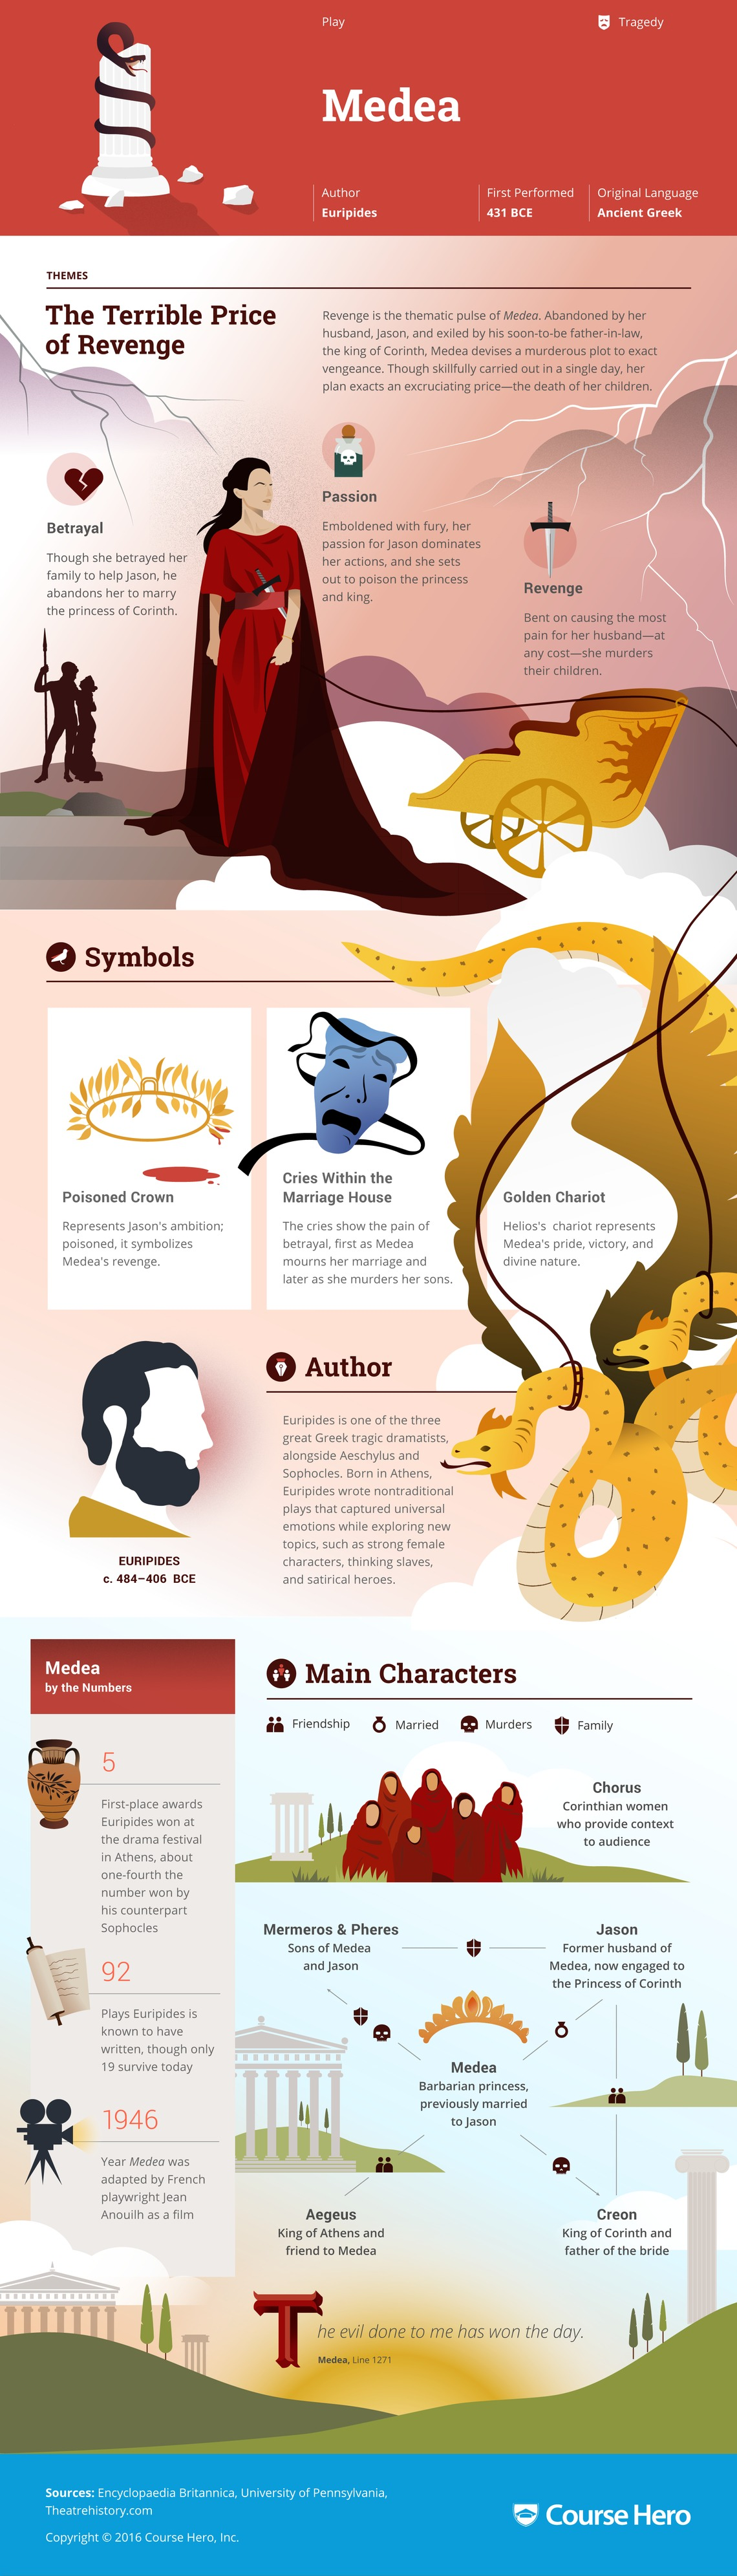 persuasion infographic course hero baby you re so classic study guide for euripides s medea including scene summary character analysis and more learn all about medea ask questions and get the answers you need